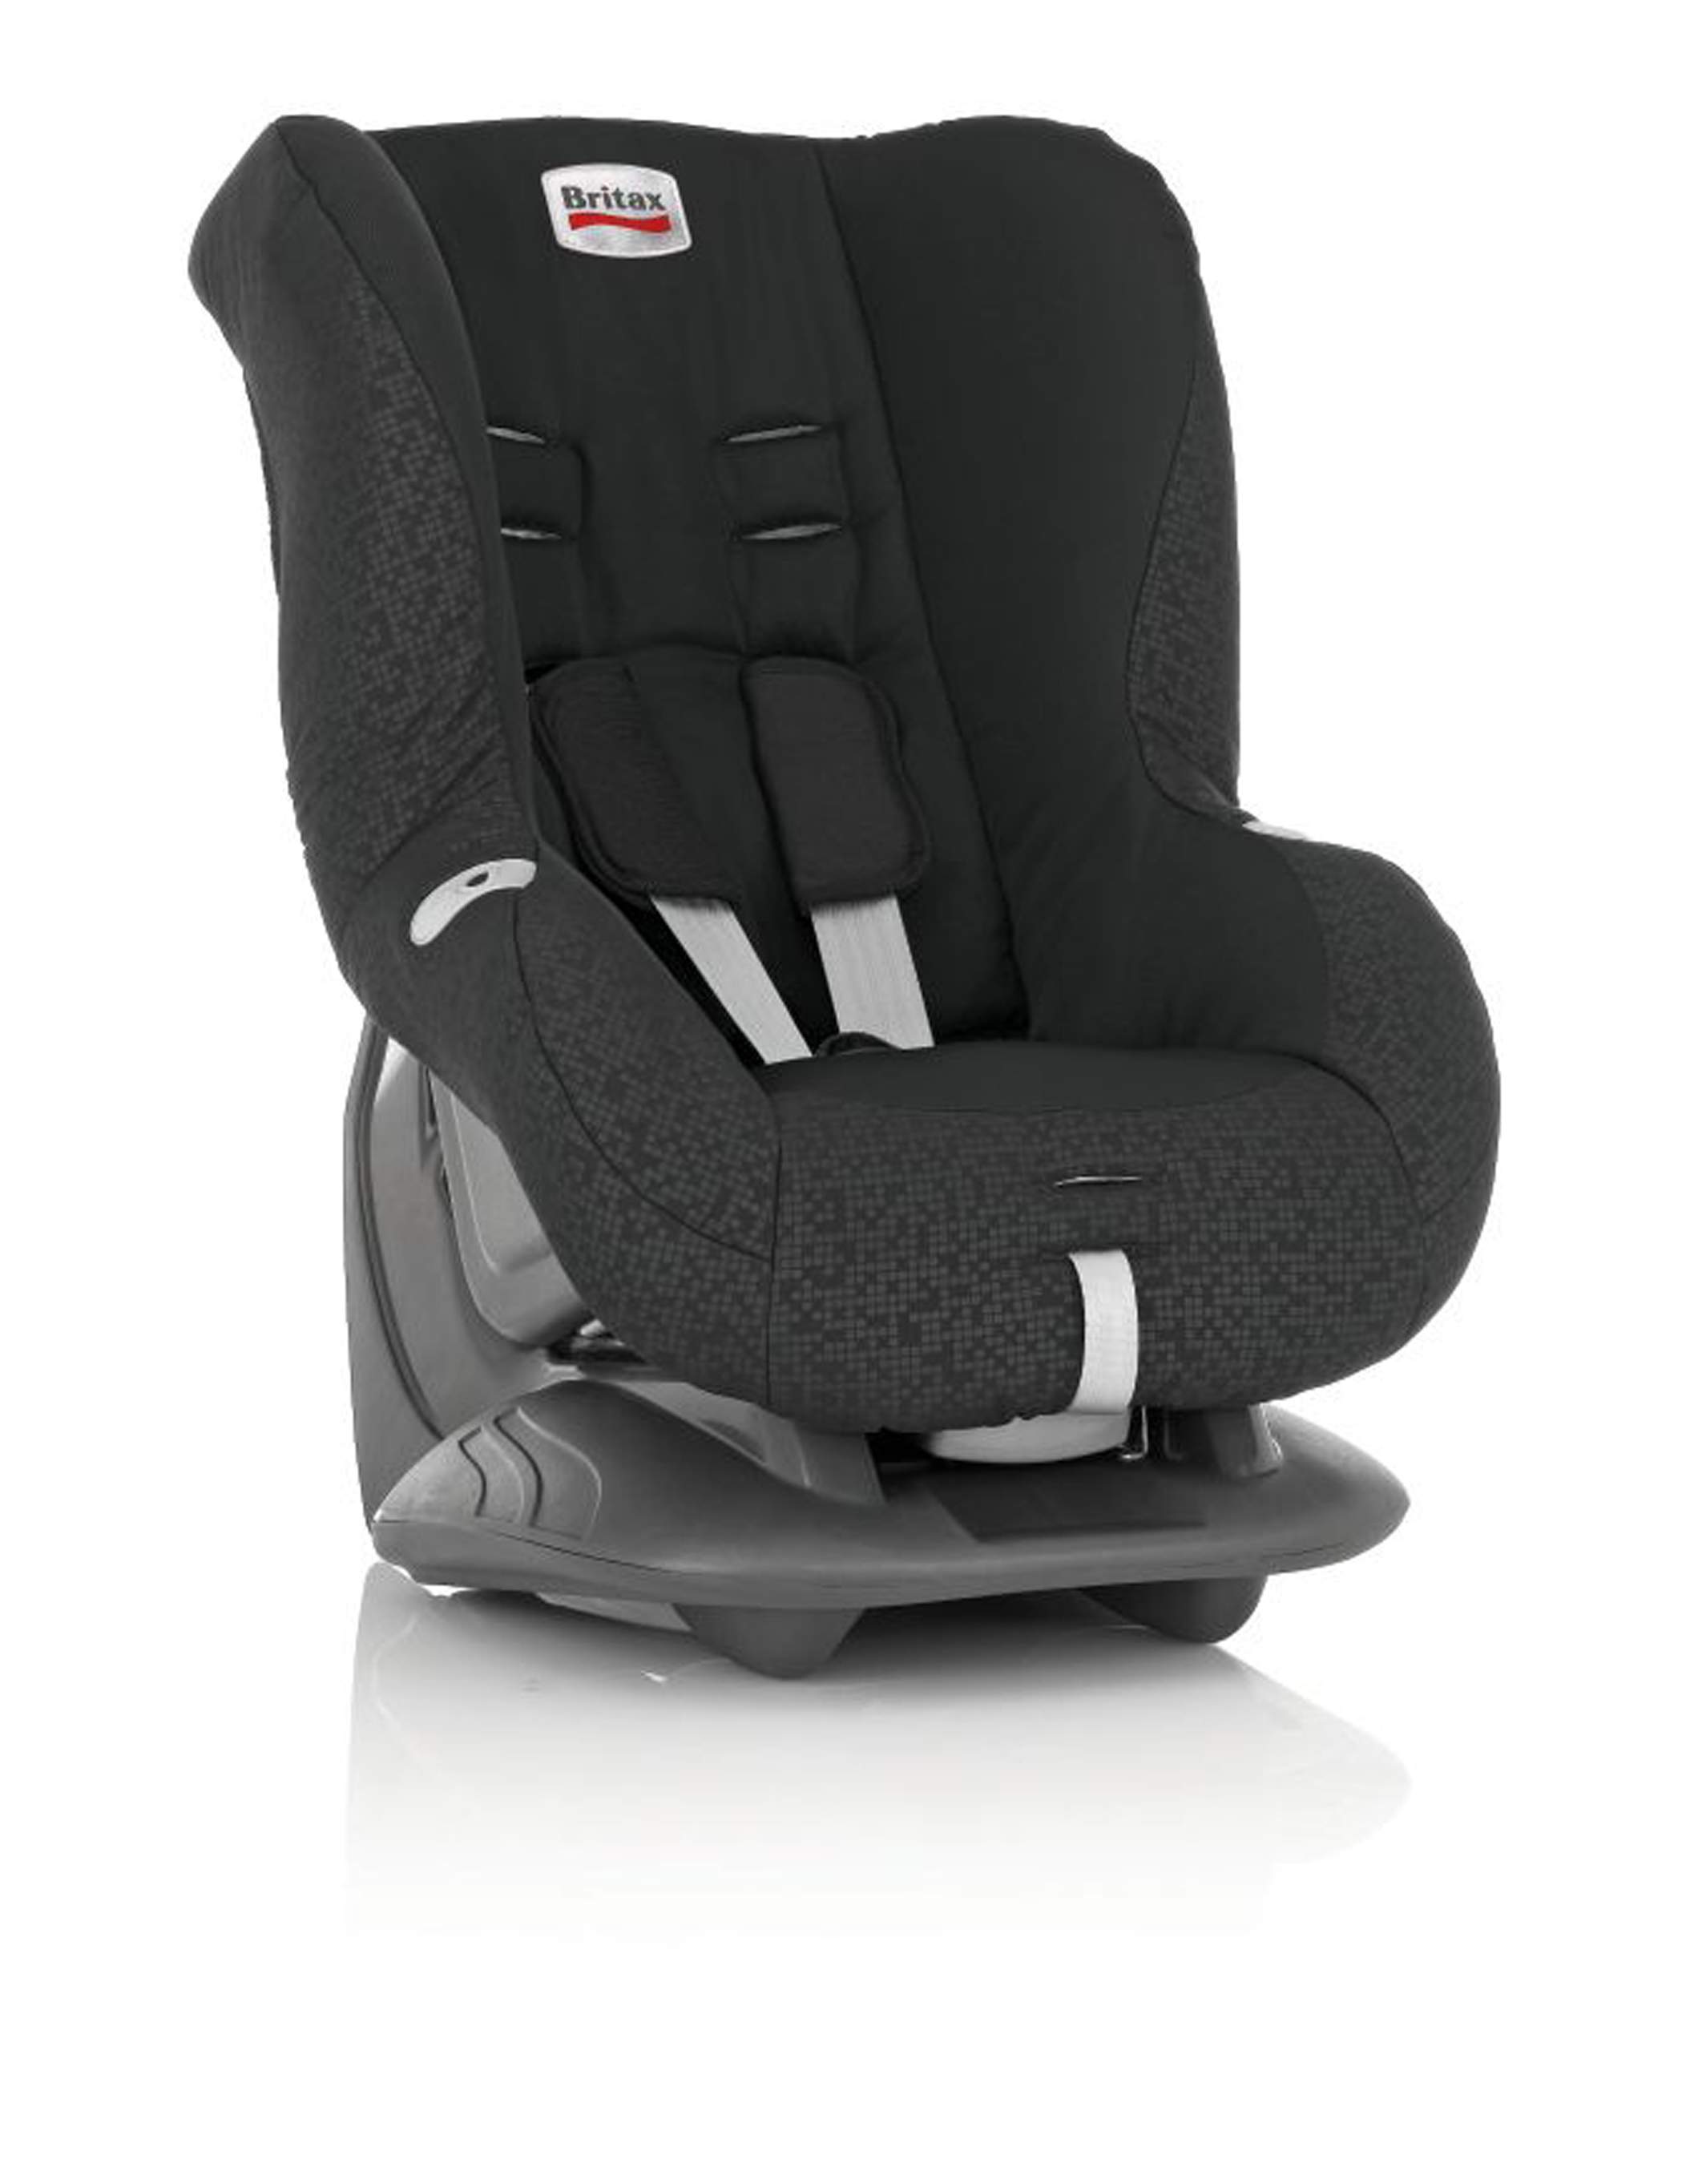 britax eclipse car seat bambinos wexford. Black Bedroom Furniture Sets. Home Design Ideas